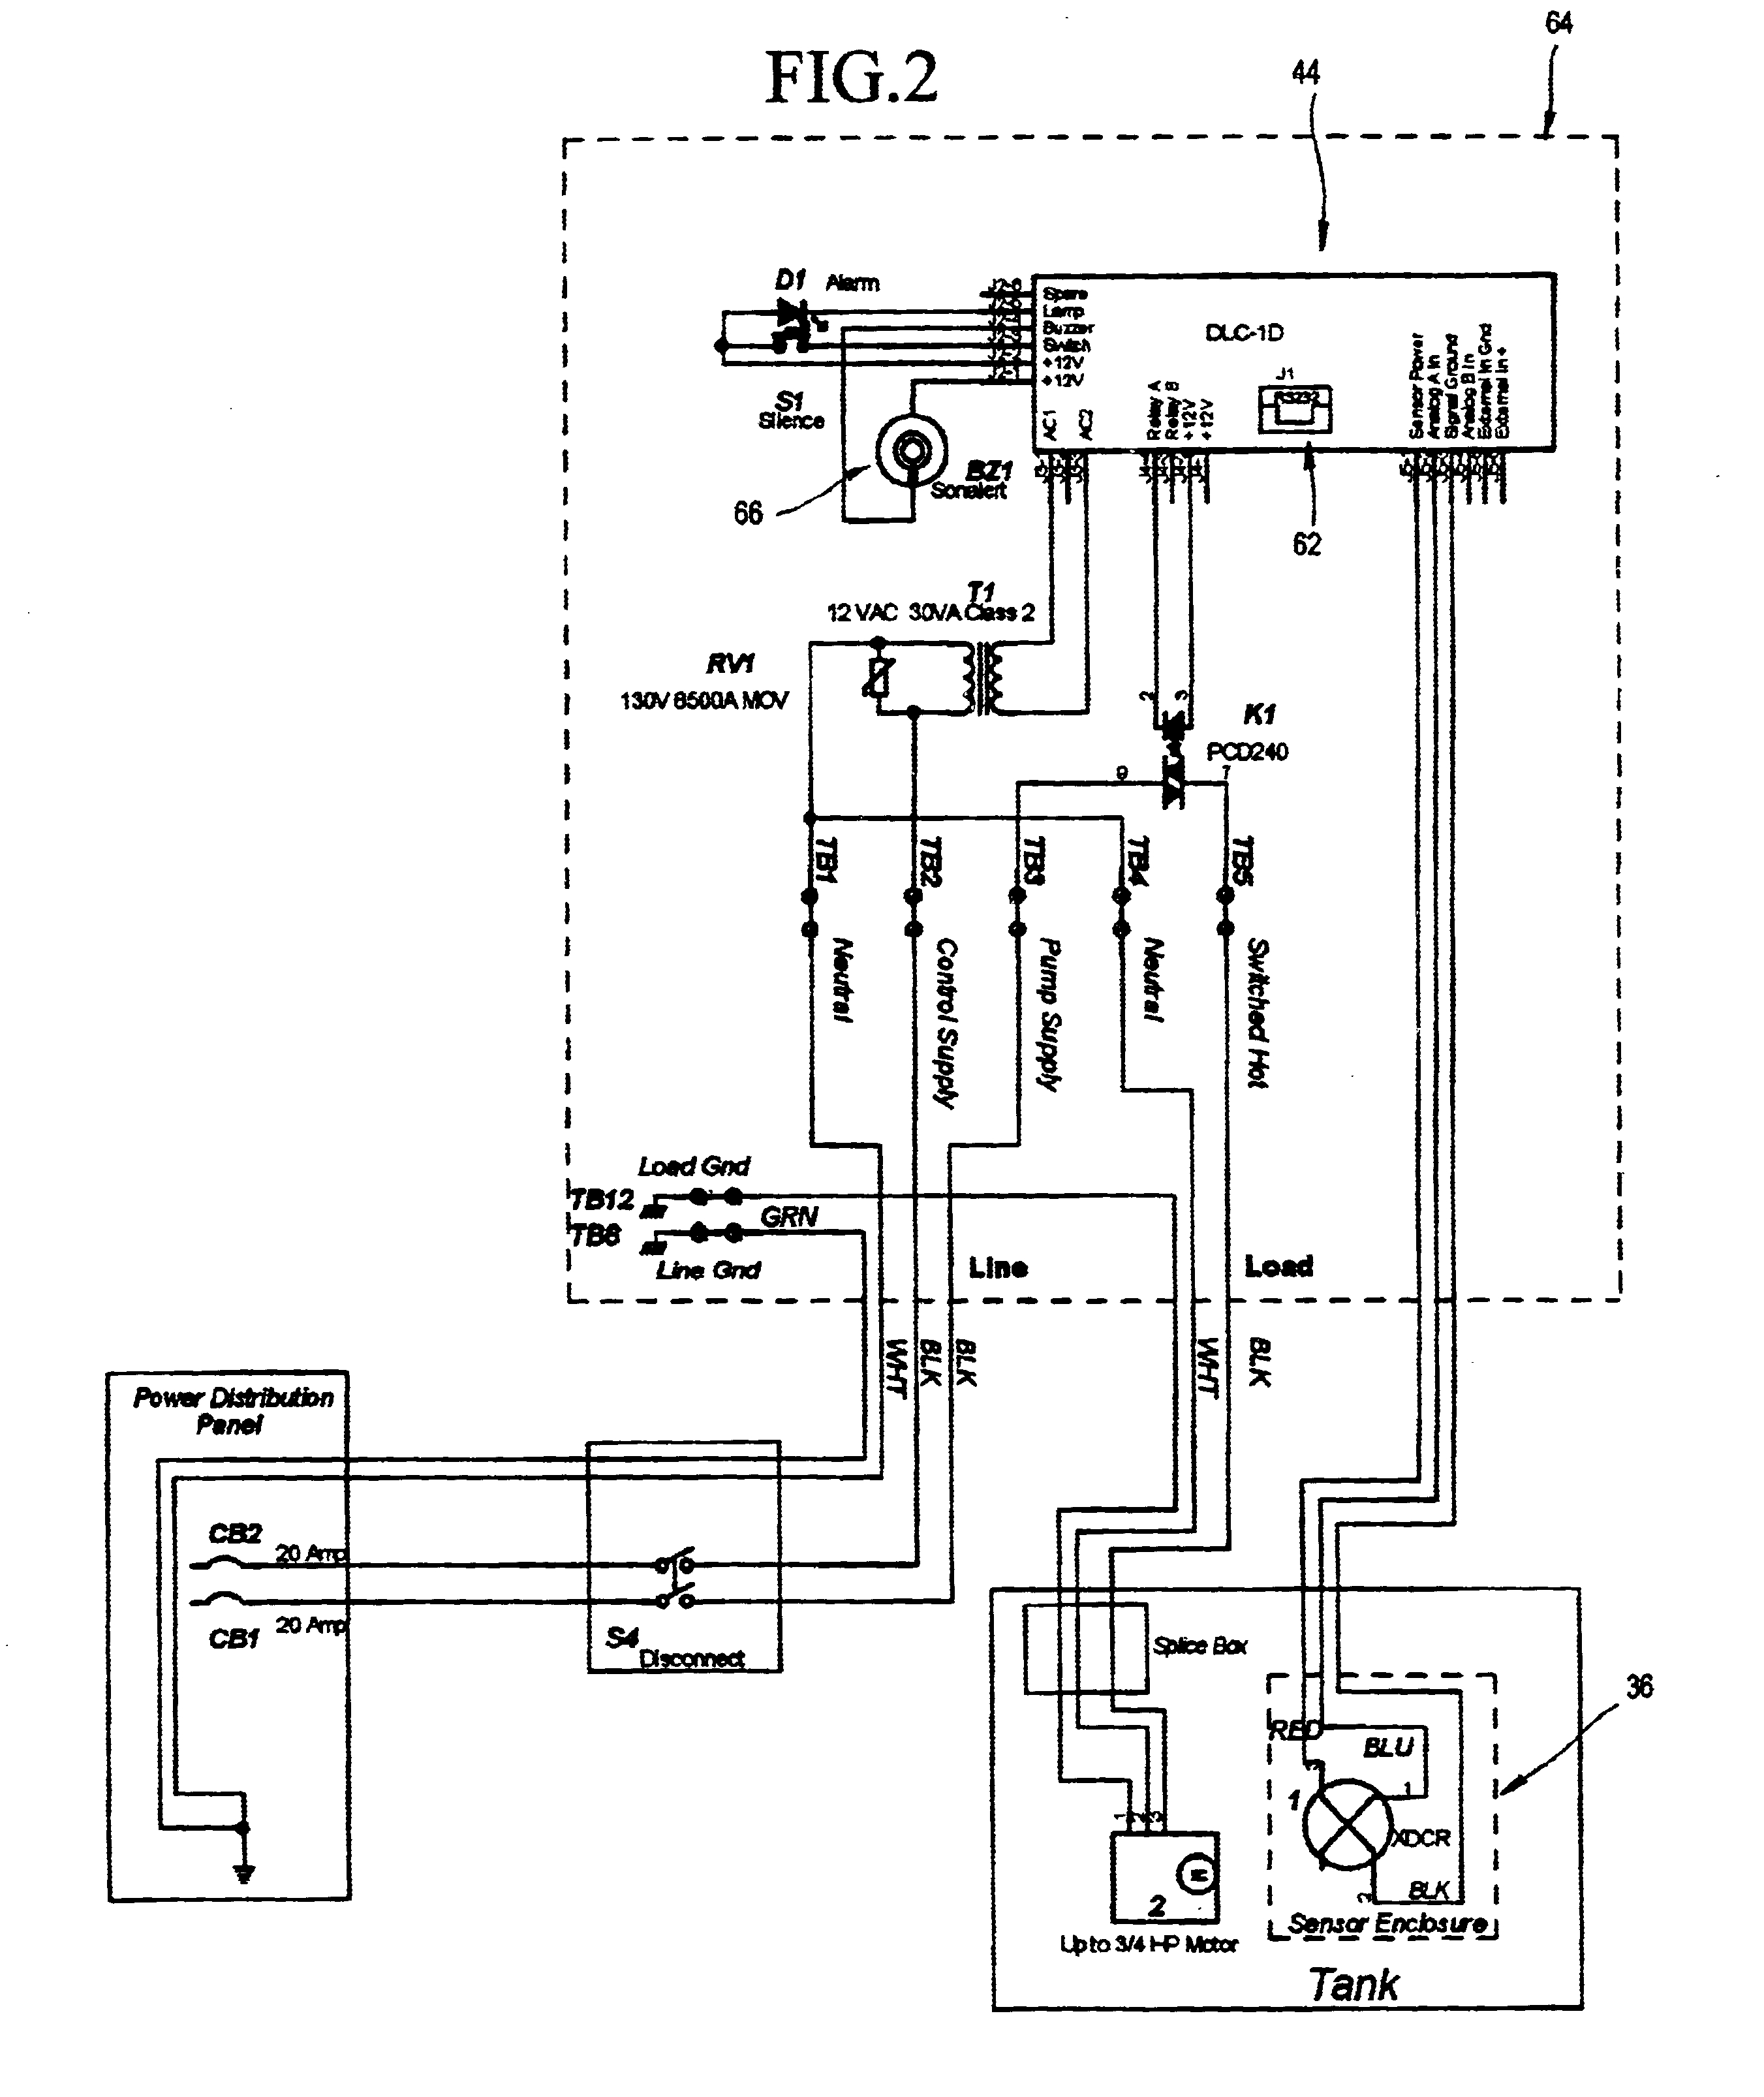 SF_5370] Sewage Pump Schematic Get Free Image About Wiring Diagram Wiring  Diagram | Pump Wiring Diagram Free Picture Schematic |  | Viewor Amenti Spoat Bepta Mohammedshrine Librar Wiring 101